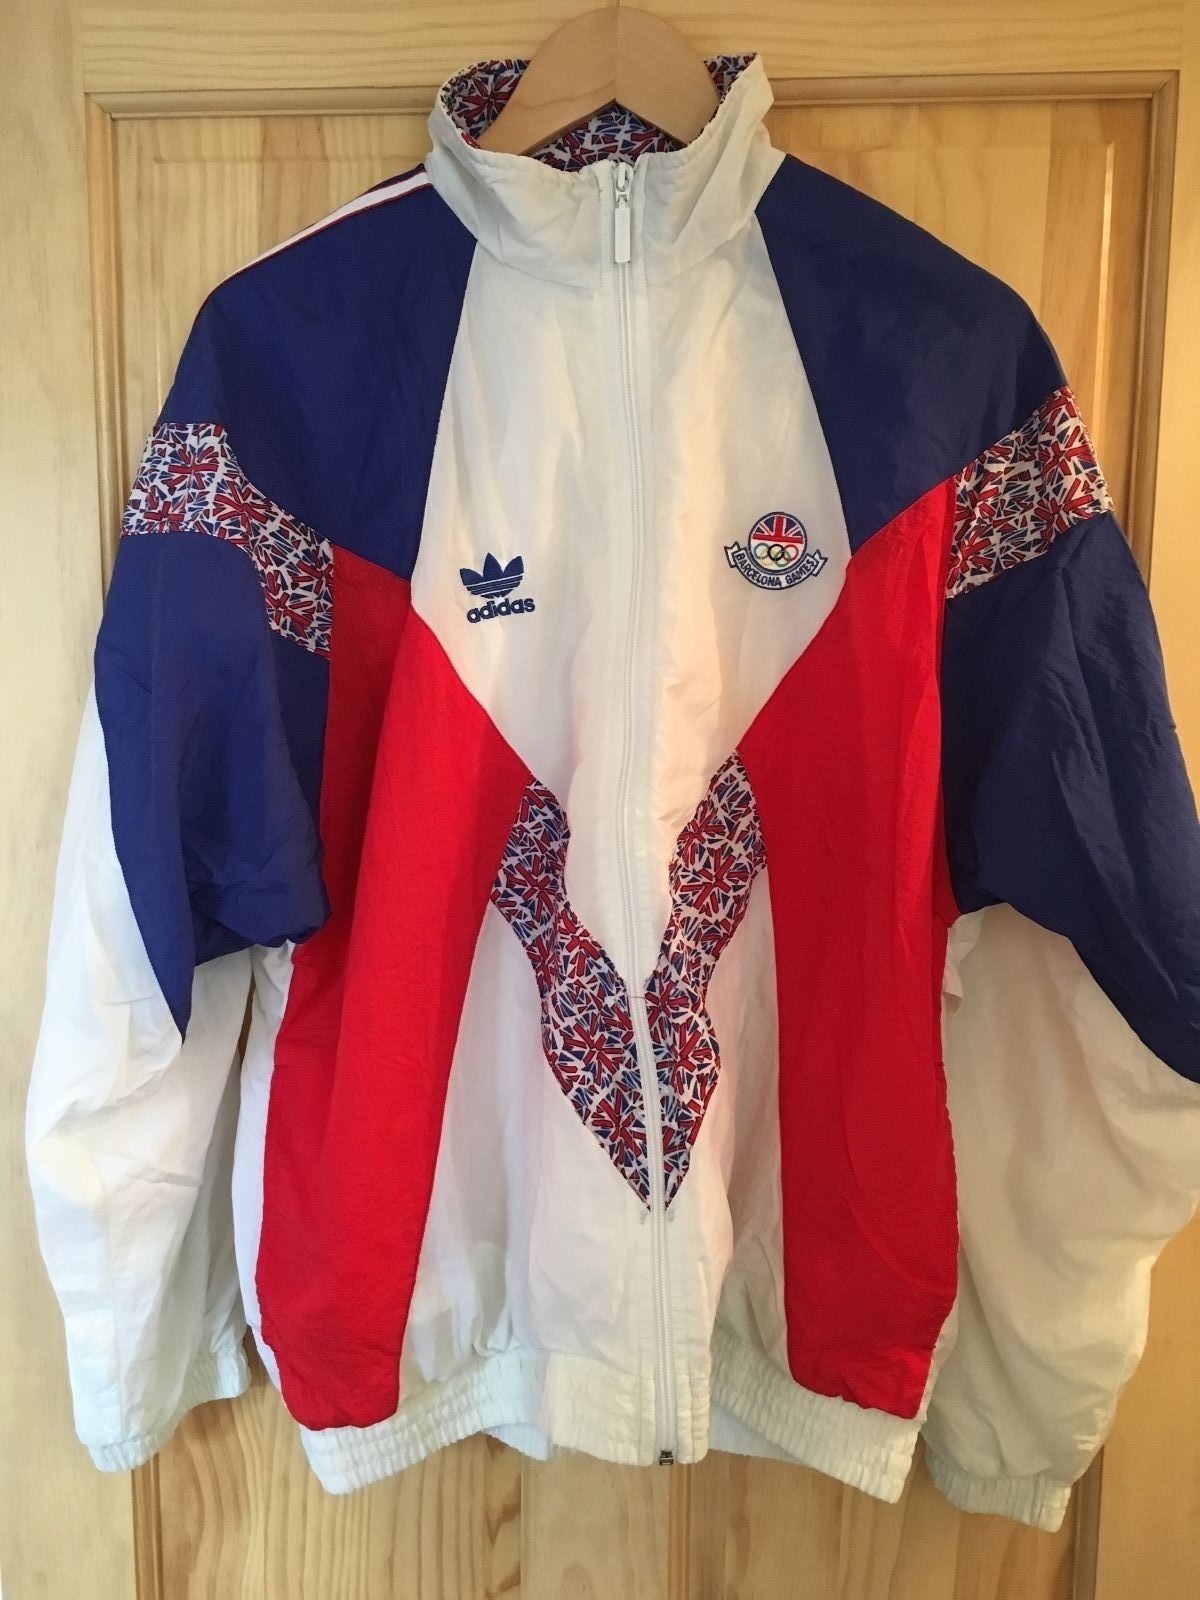 a73348ea680a0 Details about Vintage ADIDAS Team GB Barcelona 92  Olympics ...